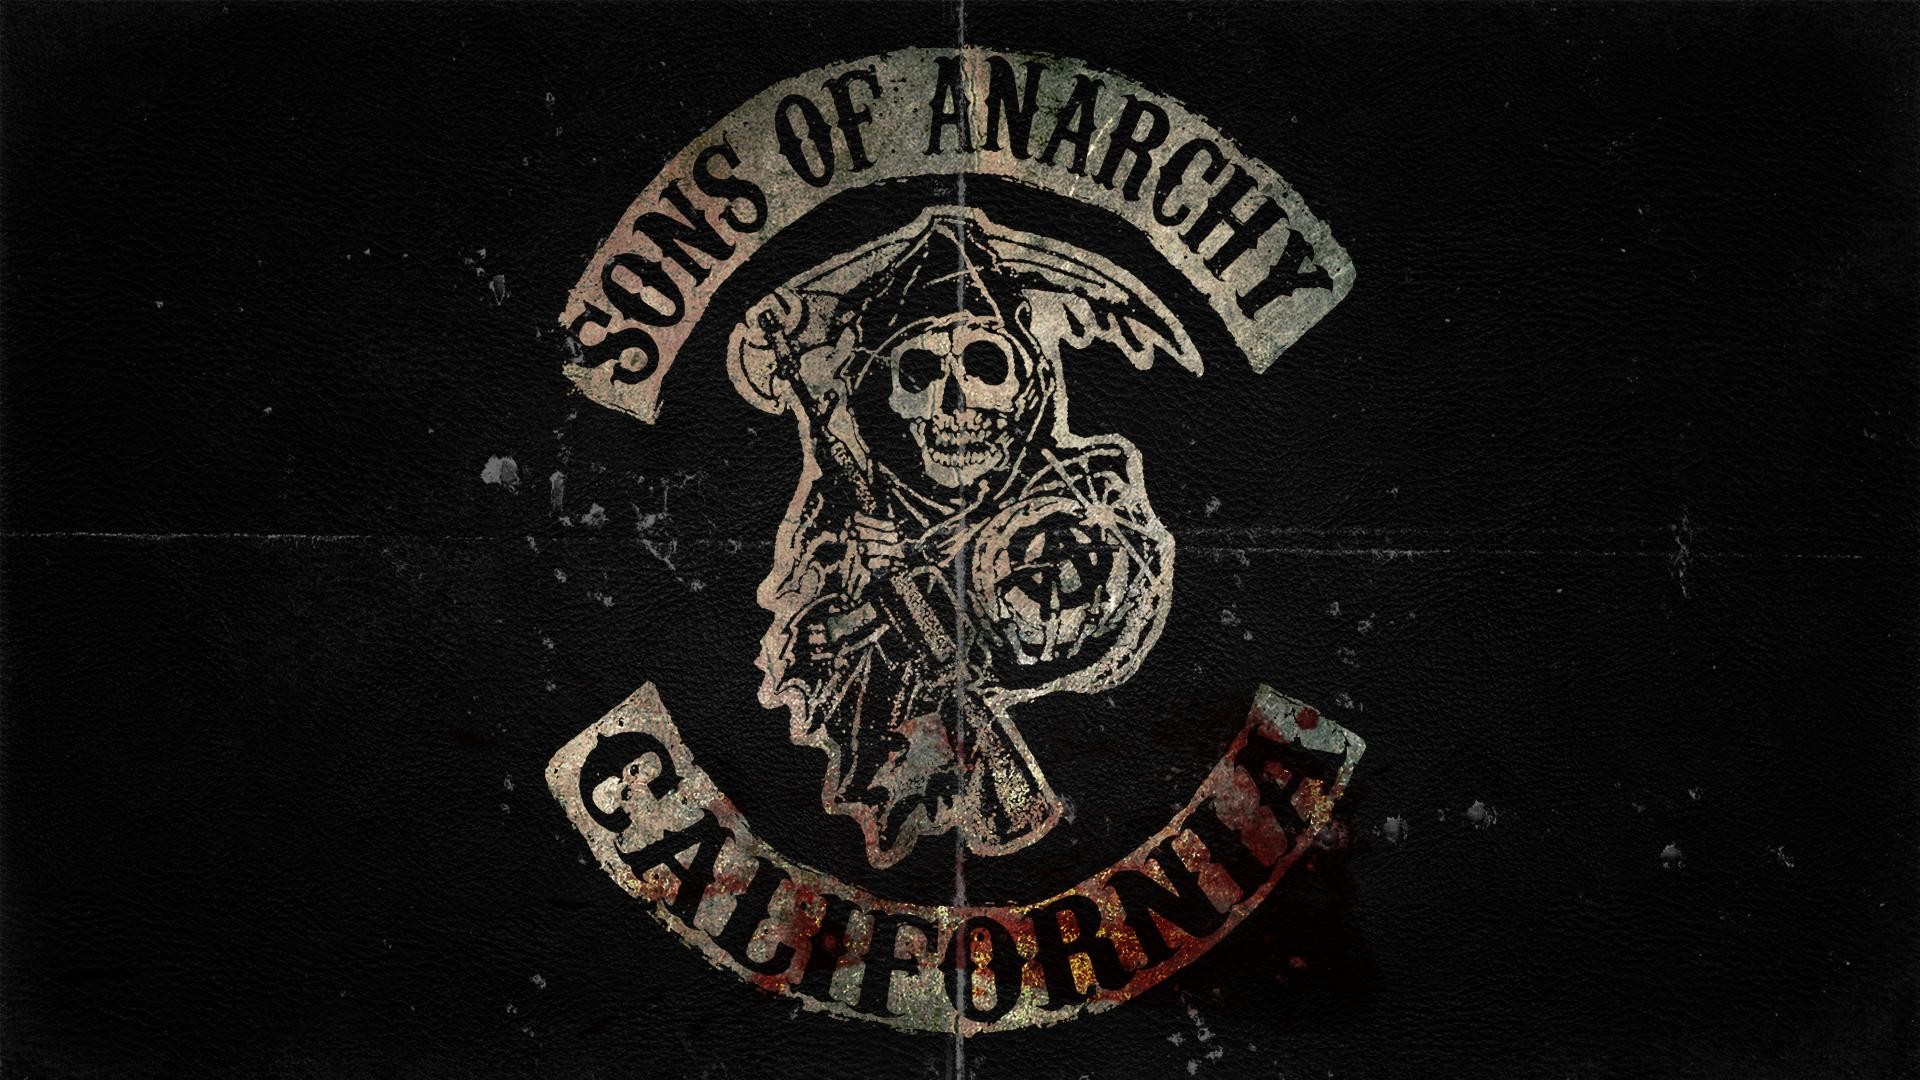 Sons of Anarchy wallpaper ·① Download free HD backgrounds ...